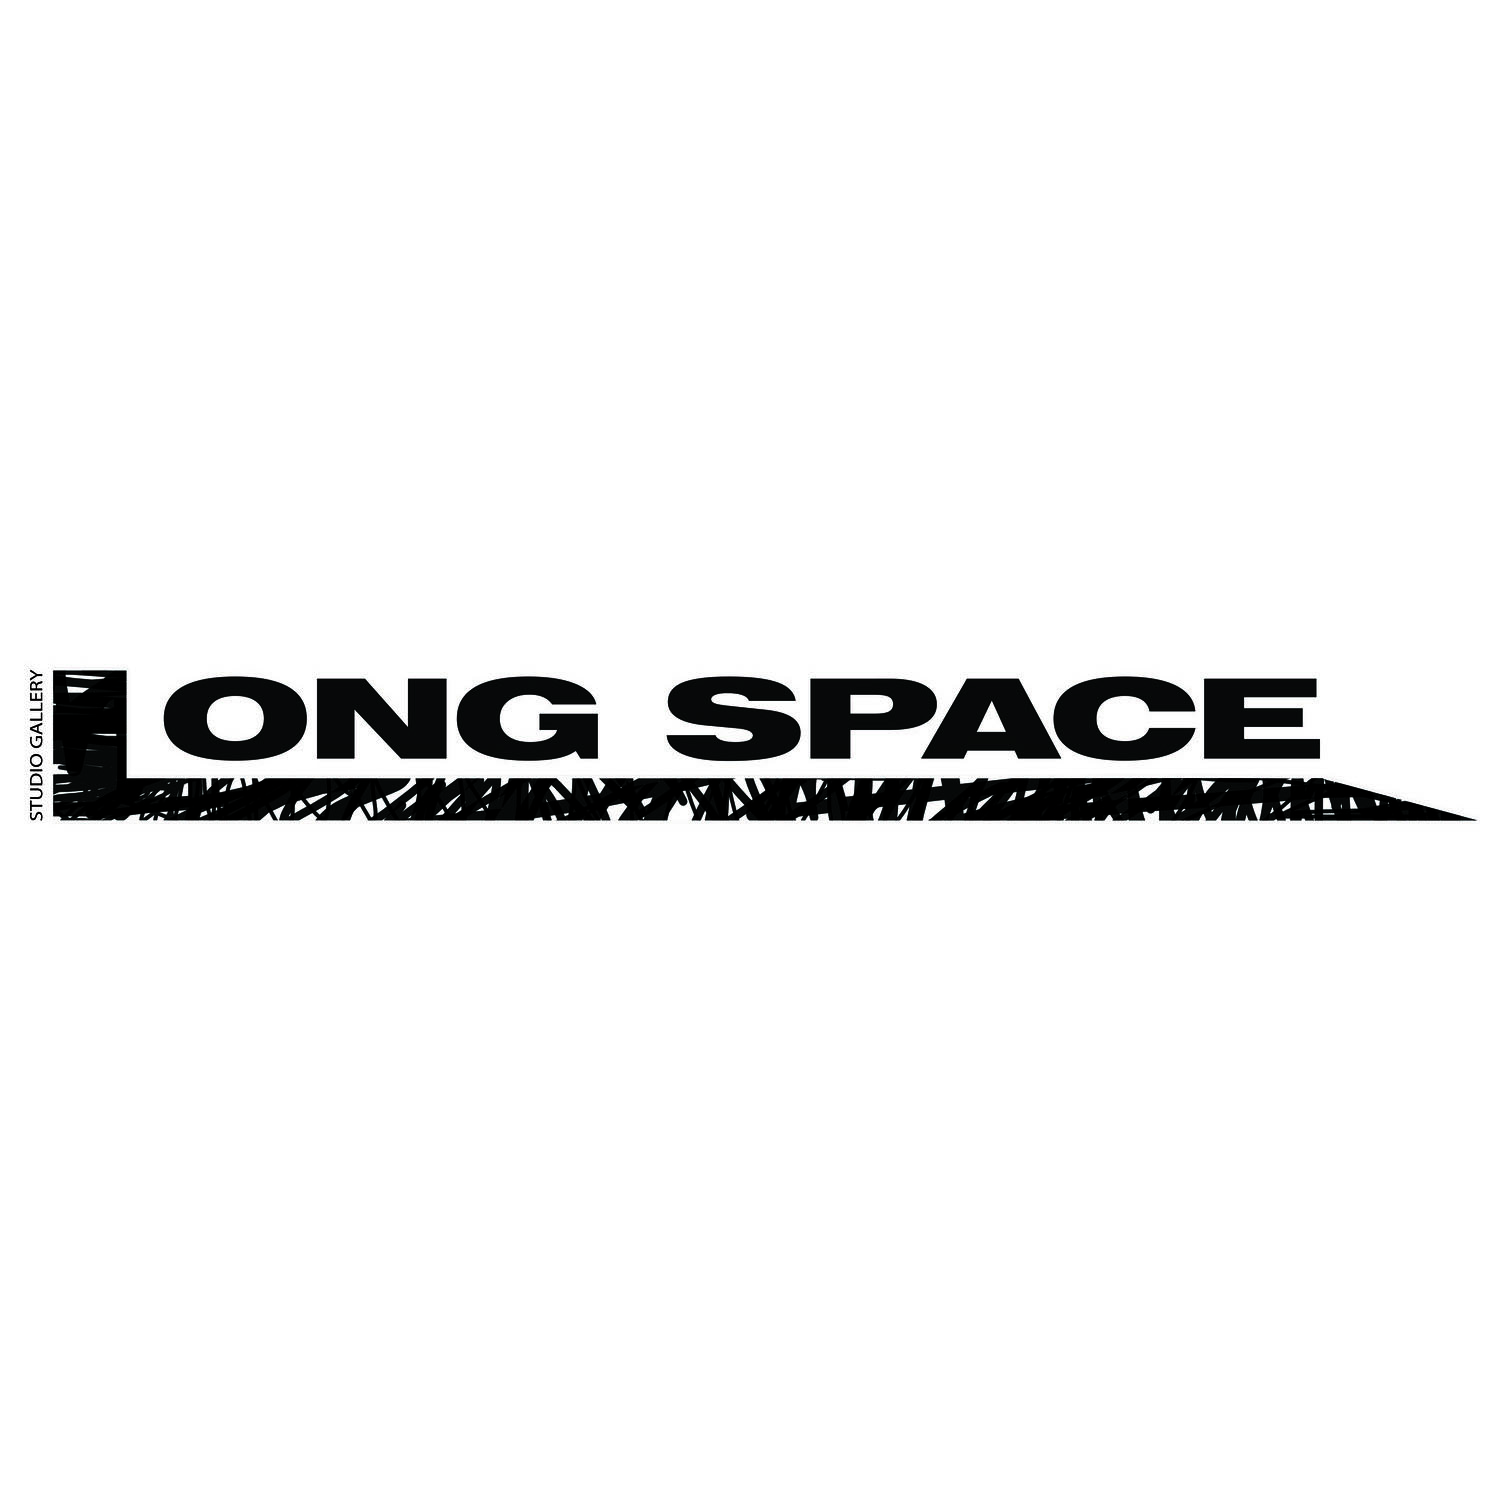 Long Space White 1x1 LOGO.jpg